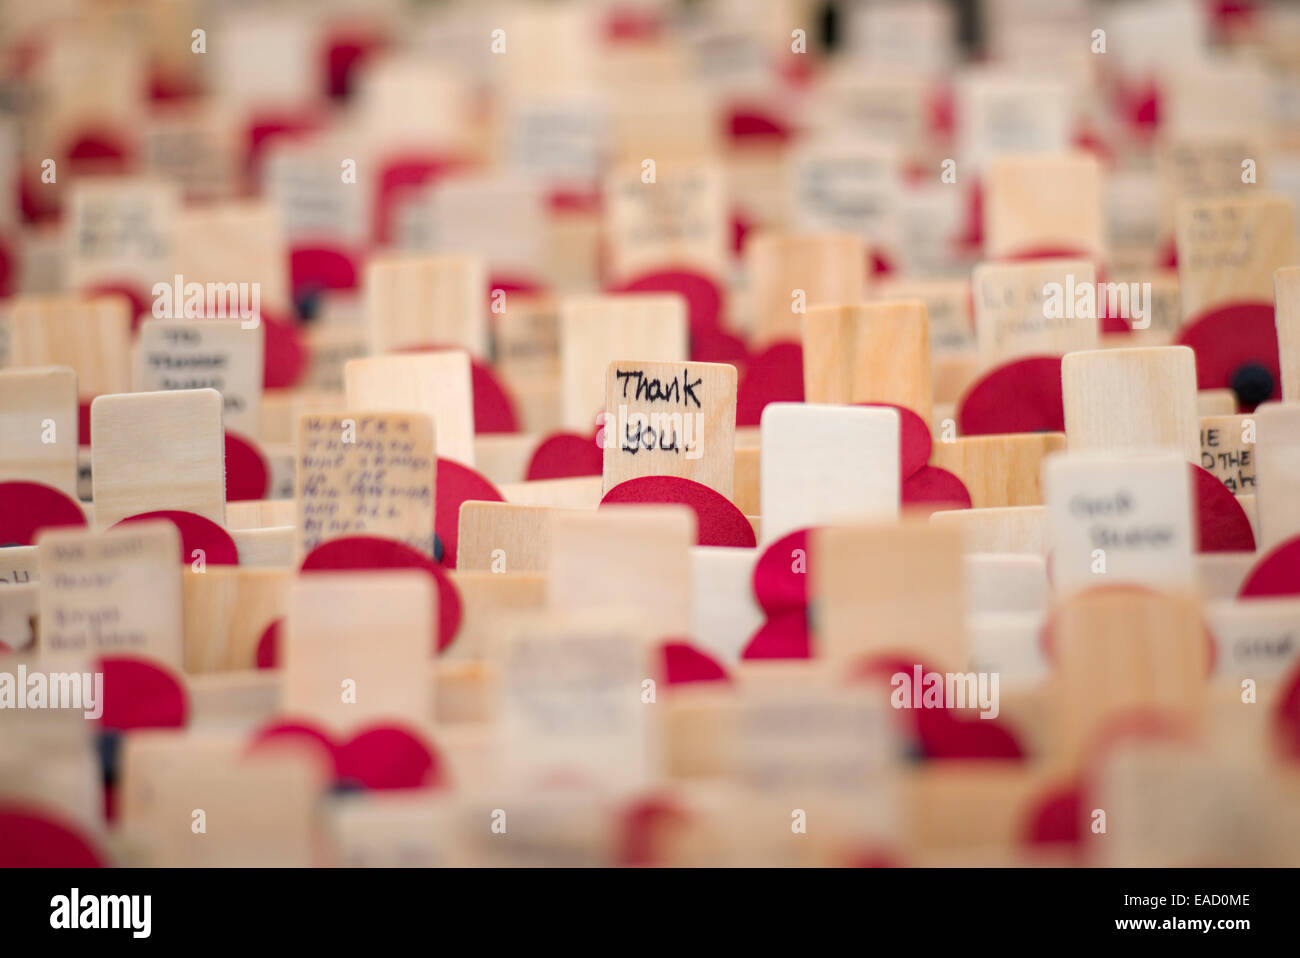 Thank You. Remembrance crosses and poppies - Stock Image